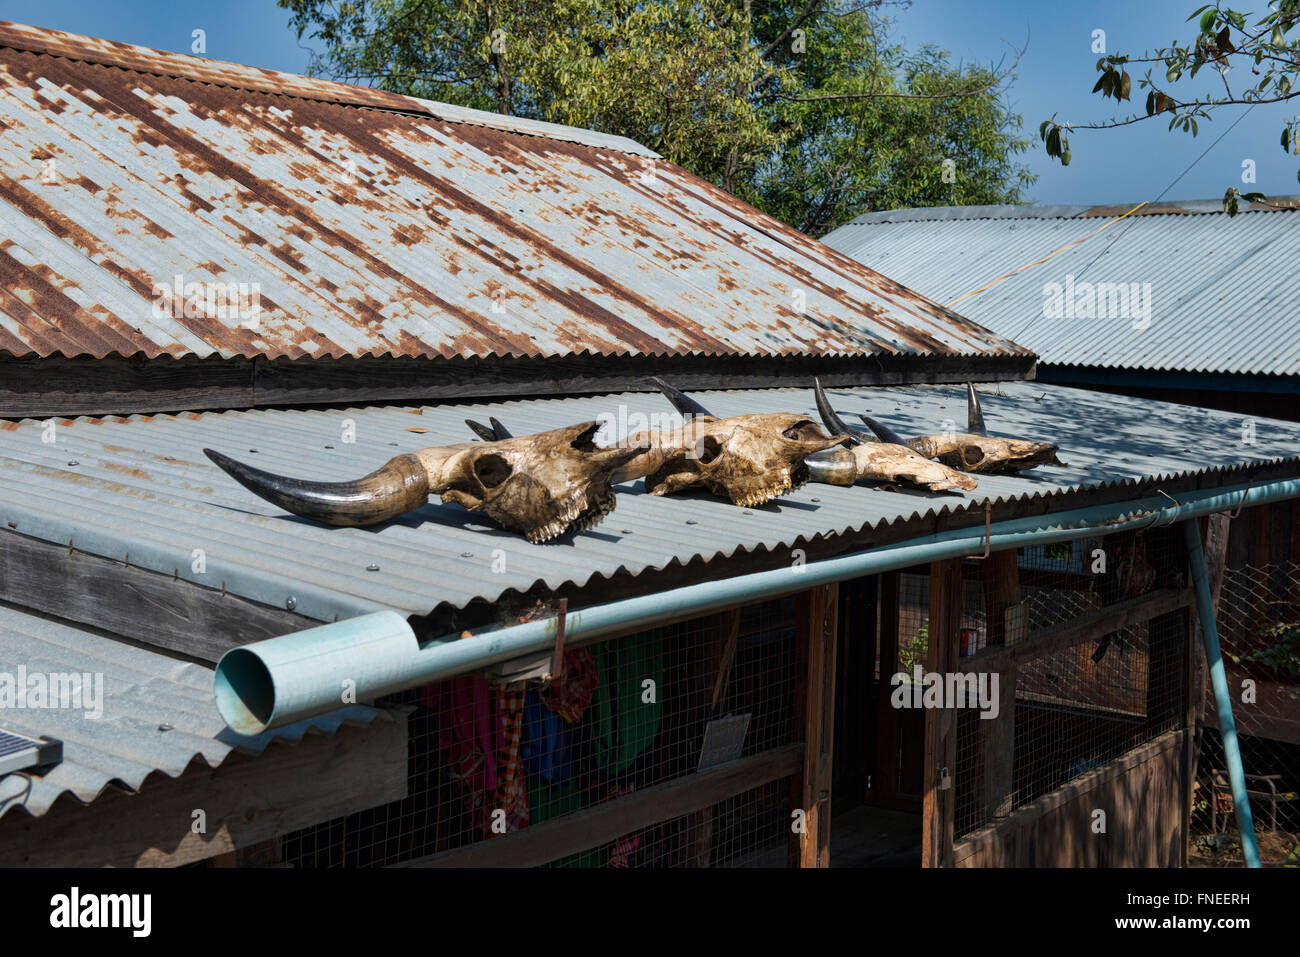 Water buffalo skulls on the roof, local belief in Mindat, Chin State, Myanmar - Stock Image